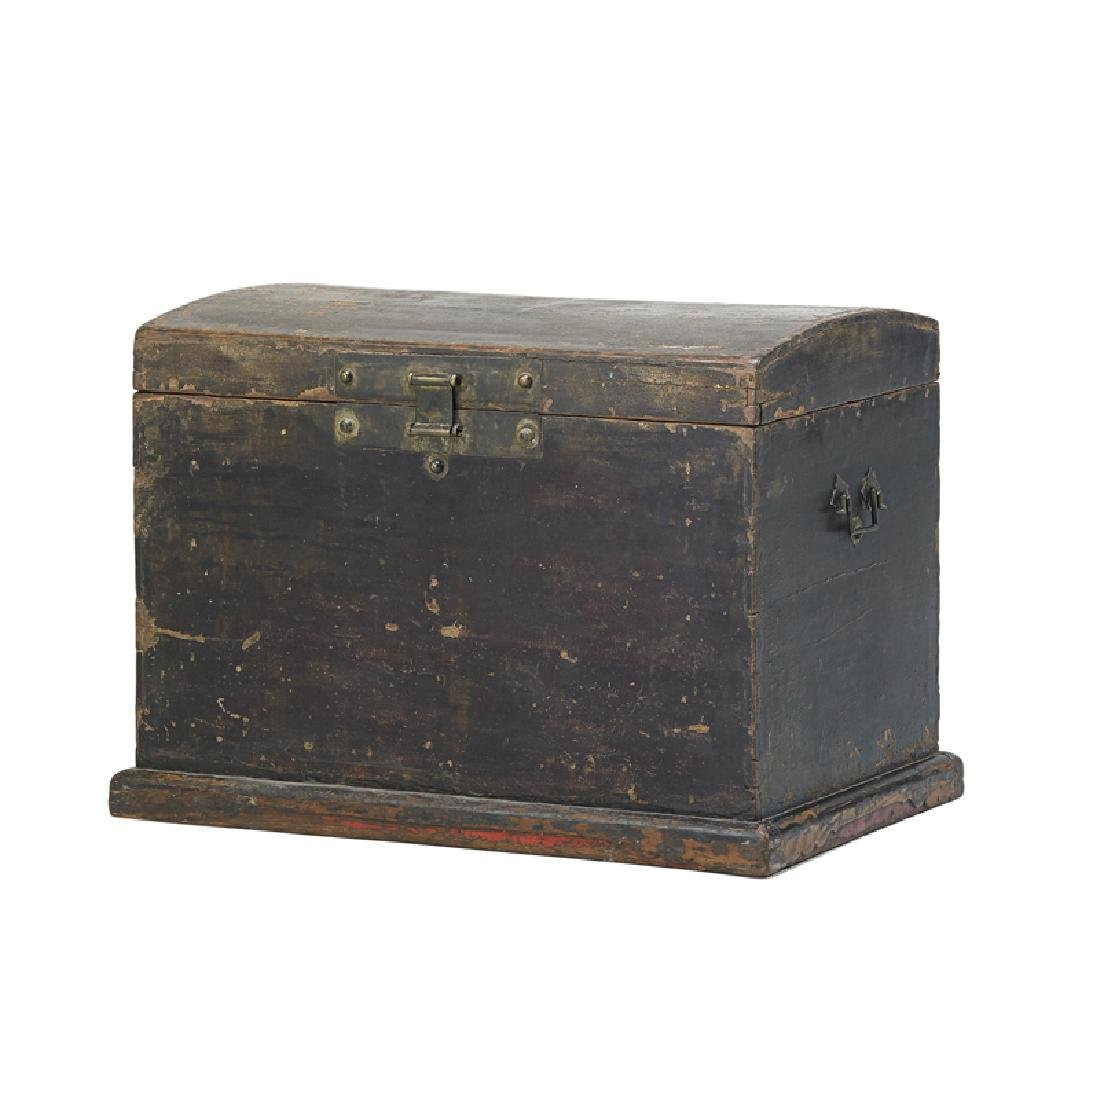 CHINESE PAINTED TRUNK